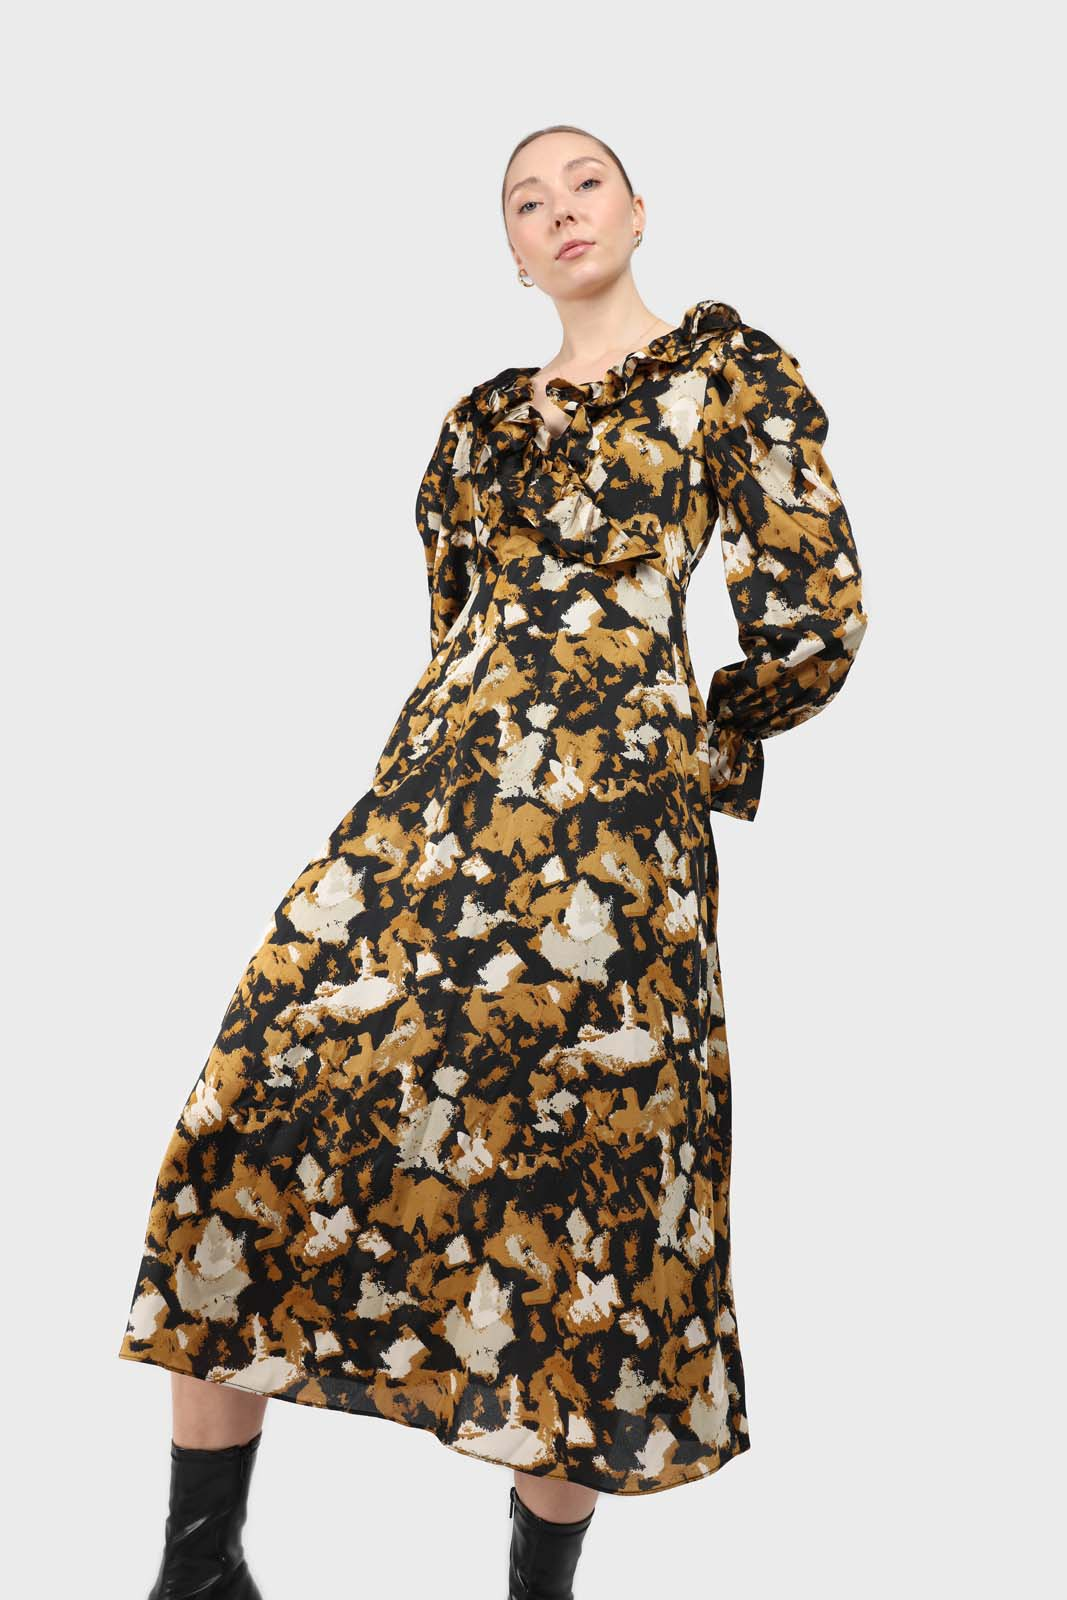 Mustard and black printed wrap maxi dress1sxc